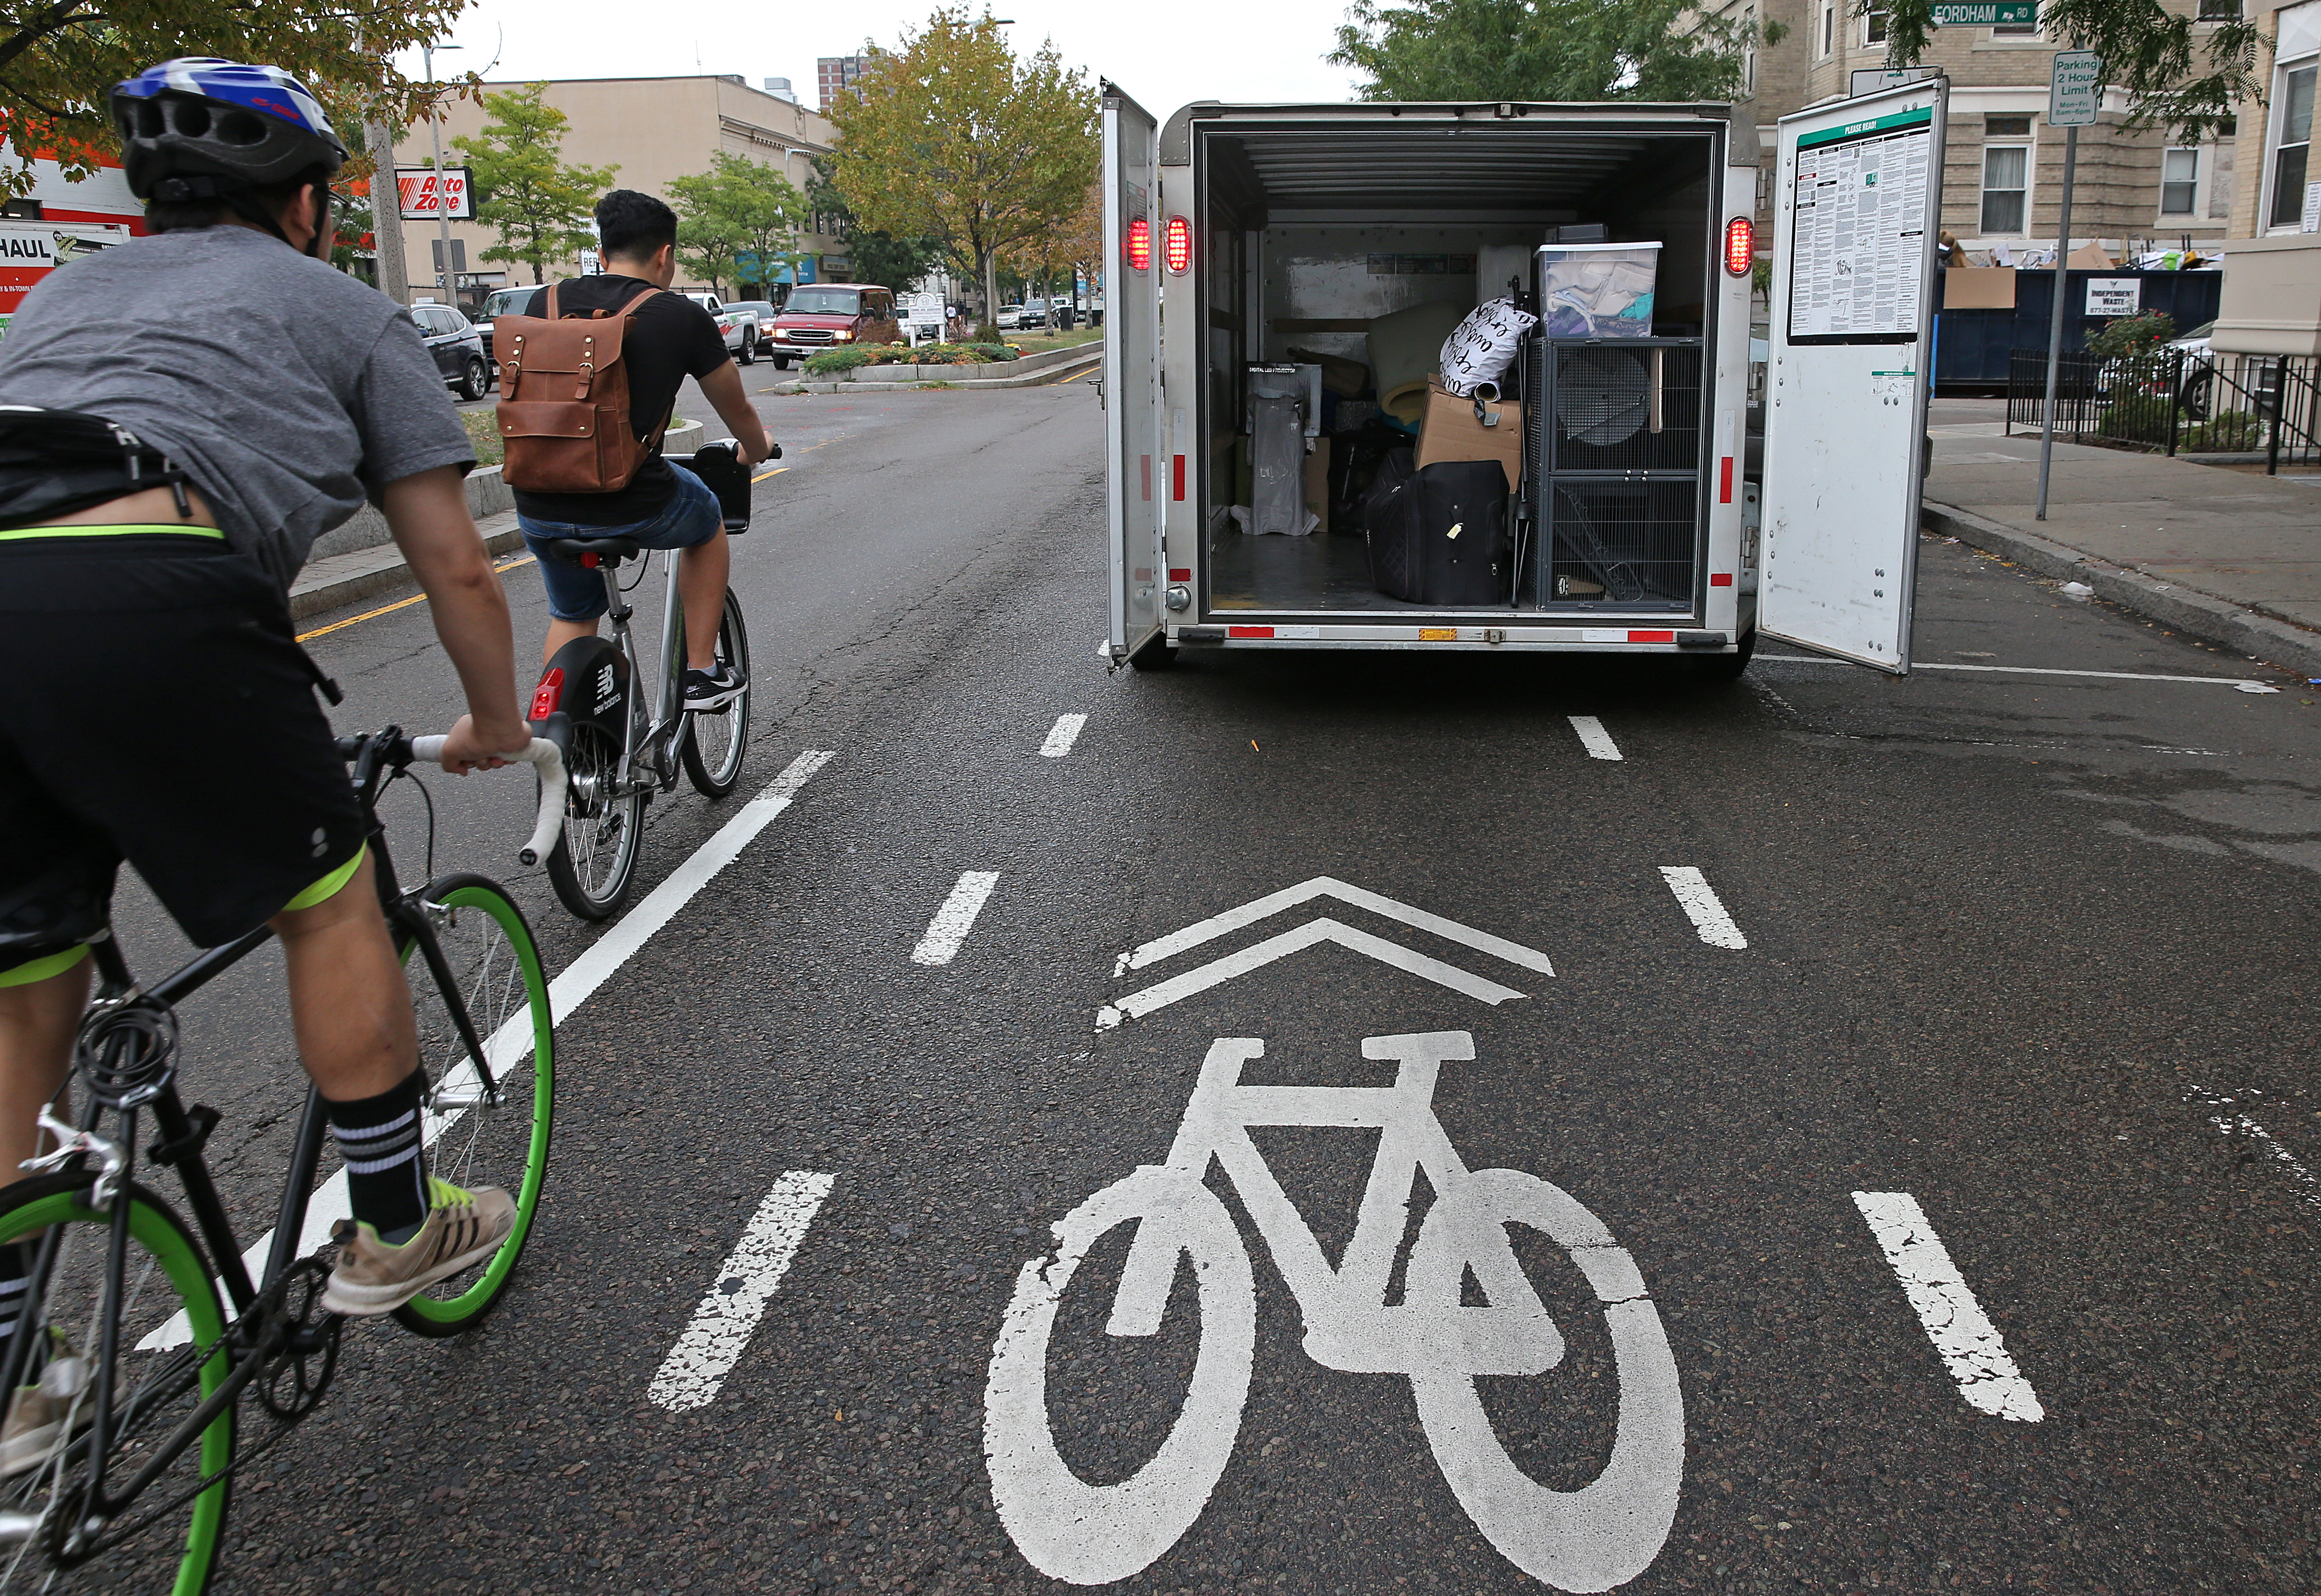 Bikers make their way around a delivery truck parked in a bike lane.